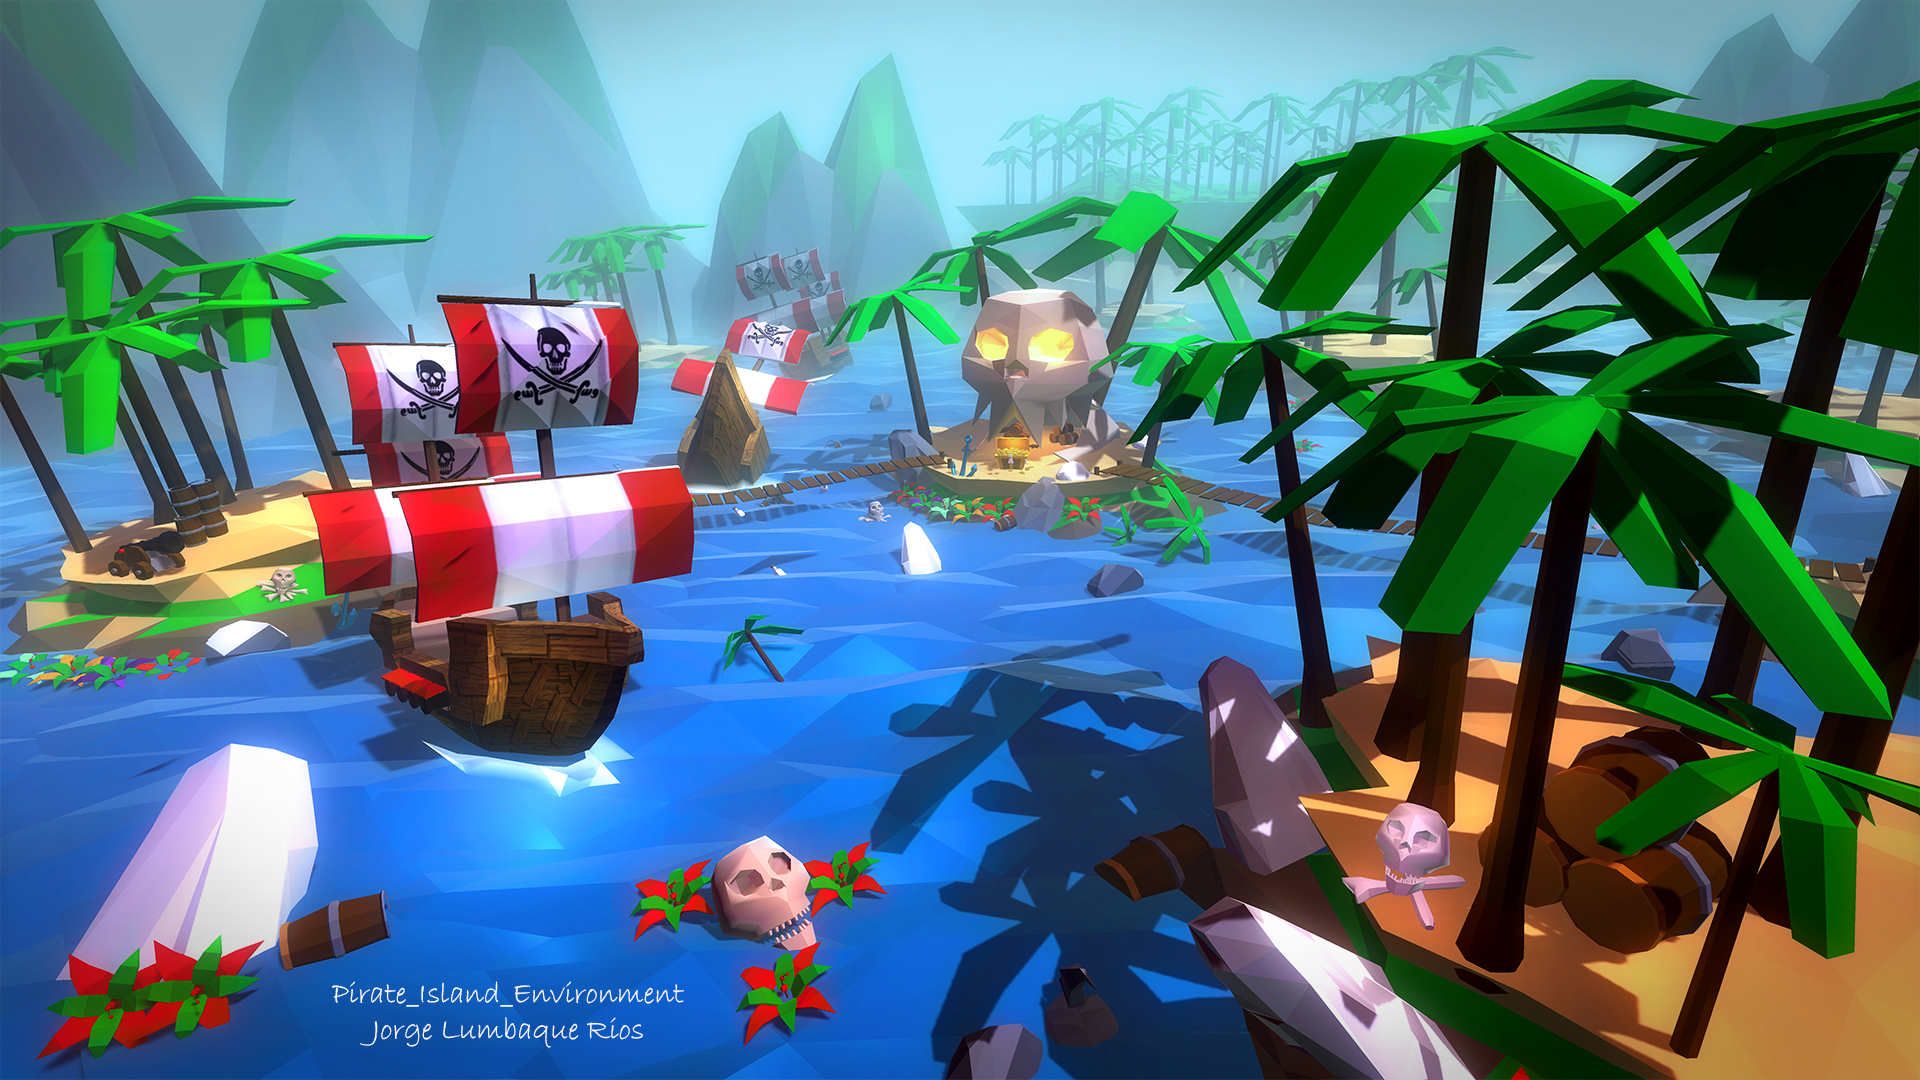 Pirate Island Environment